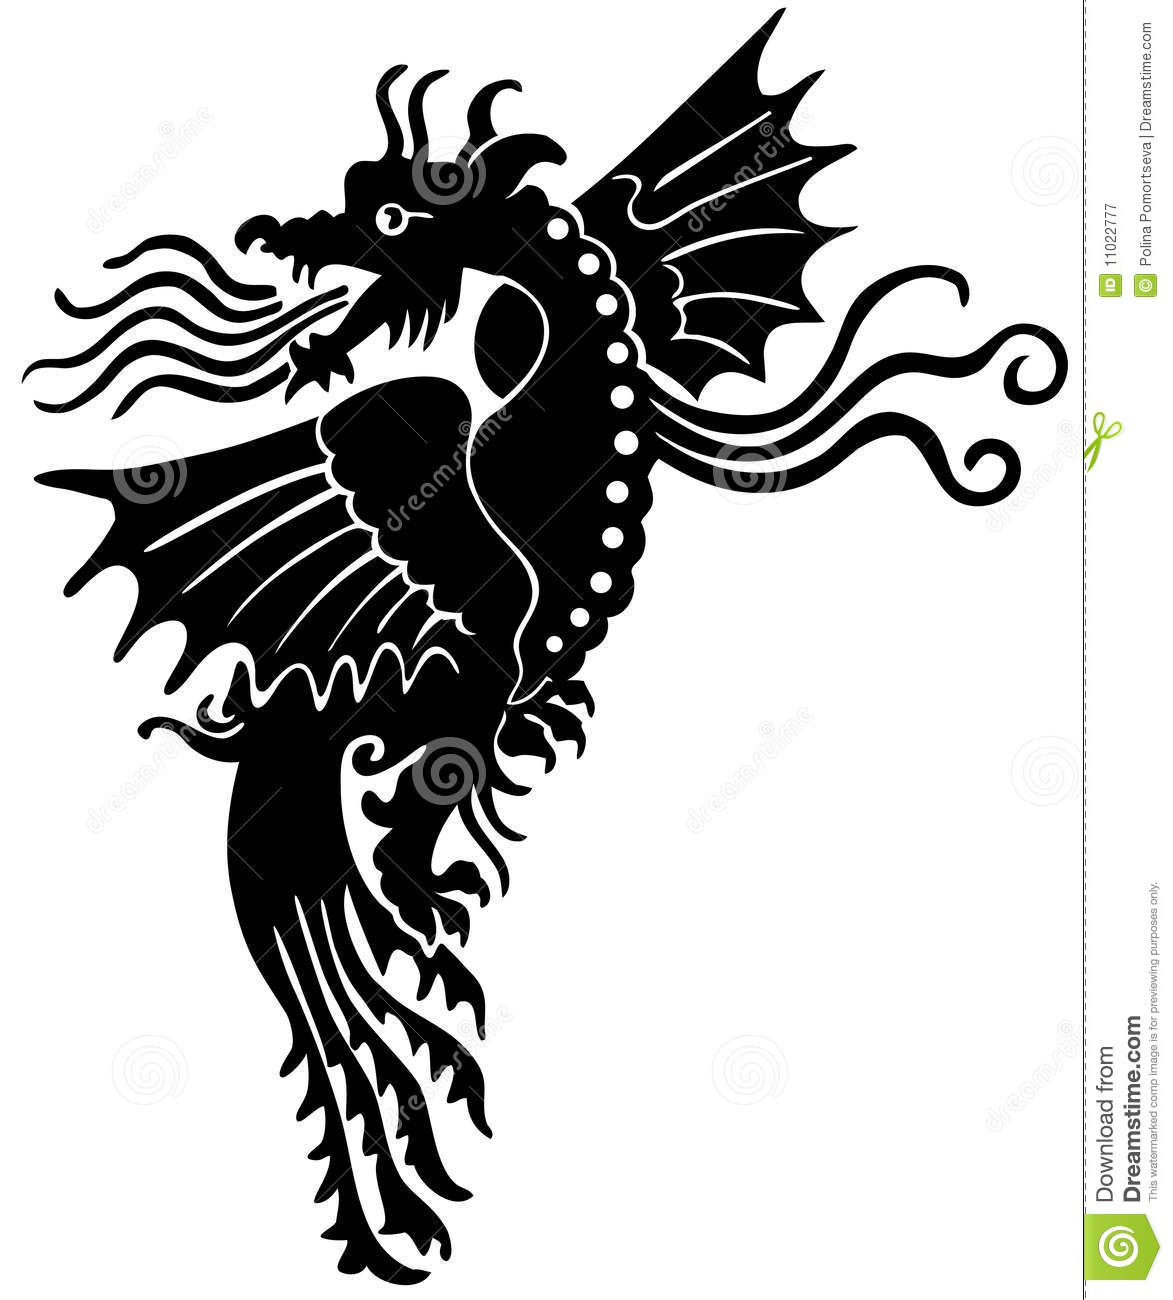 European Medieval Dragon Royalty Free Stock Photography   Image